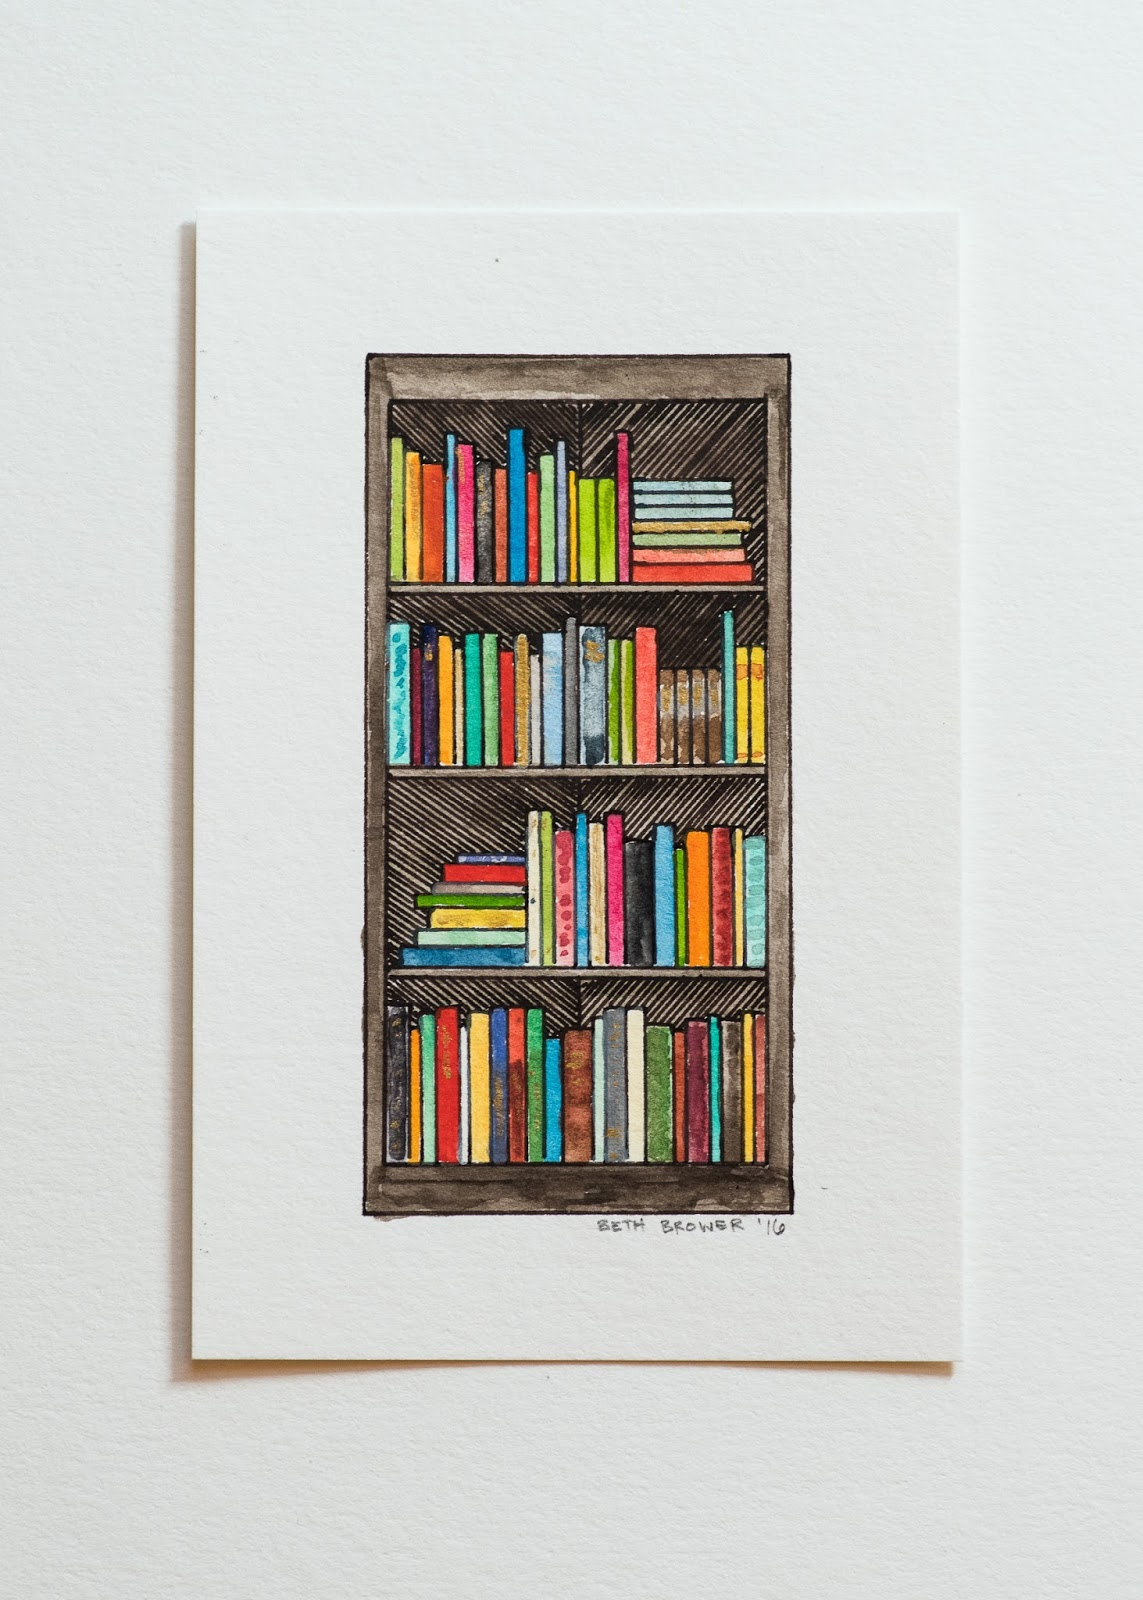 One Person Will Win The Original 4x6 Bookshelf Painting Pictured Below To Enter Simply Fill Out Rafflecopter Giveaway Is Open Internationally And